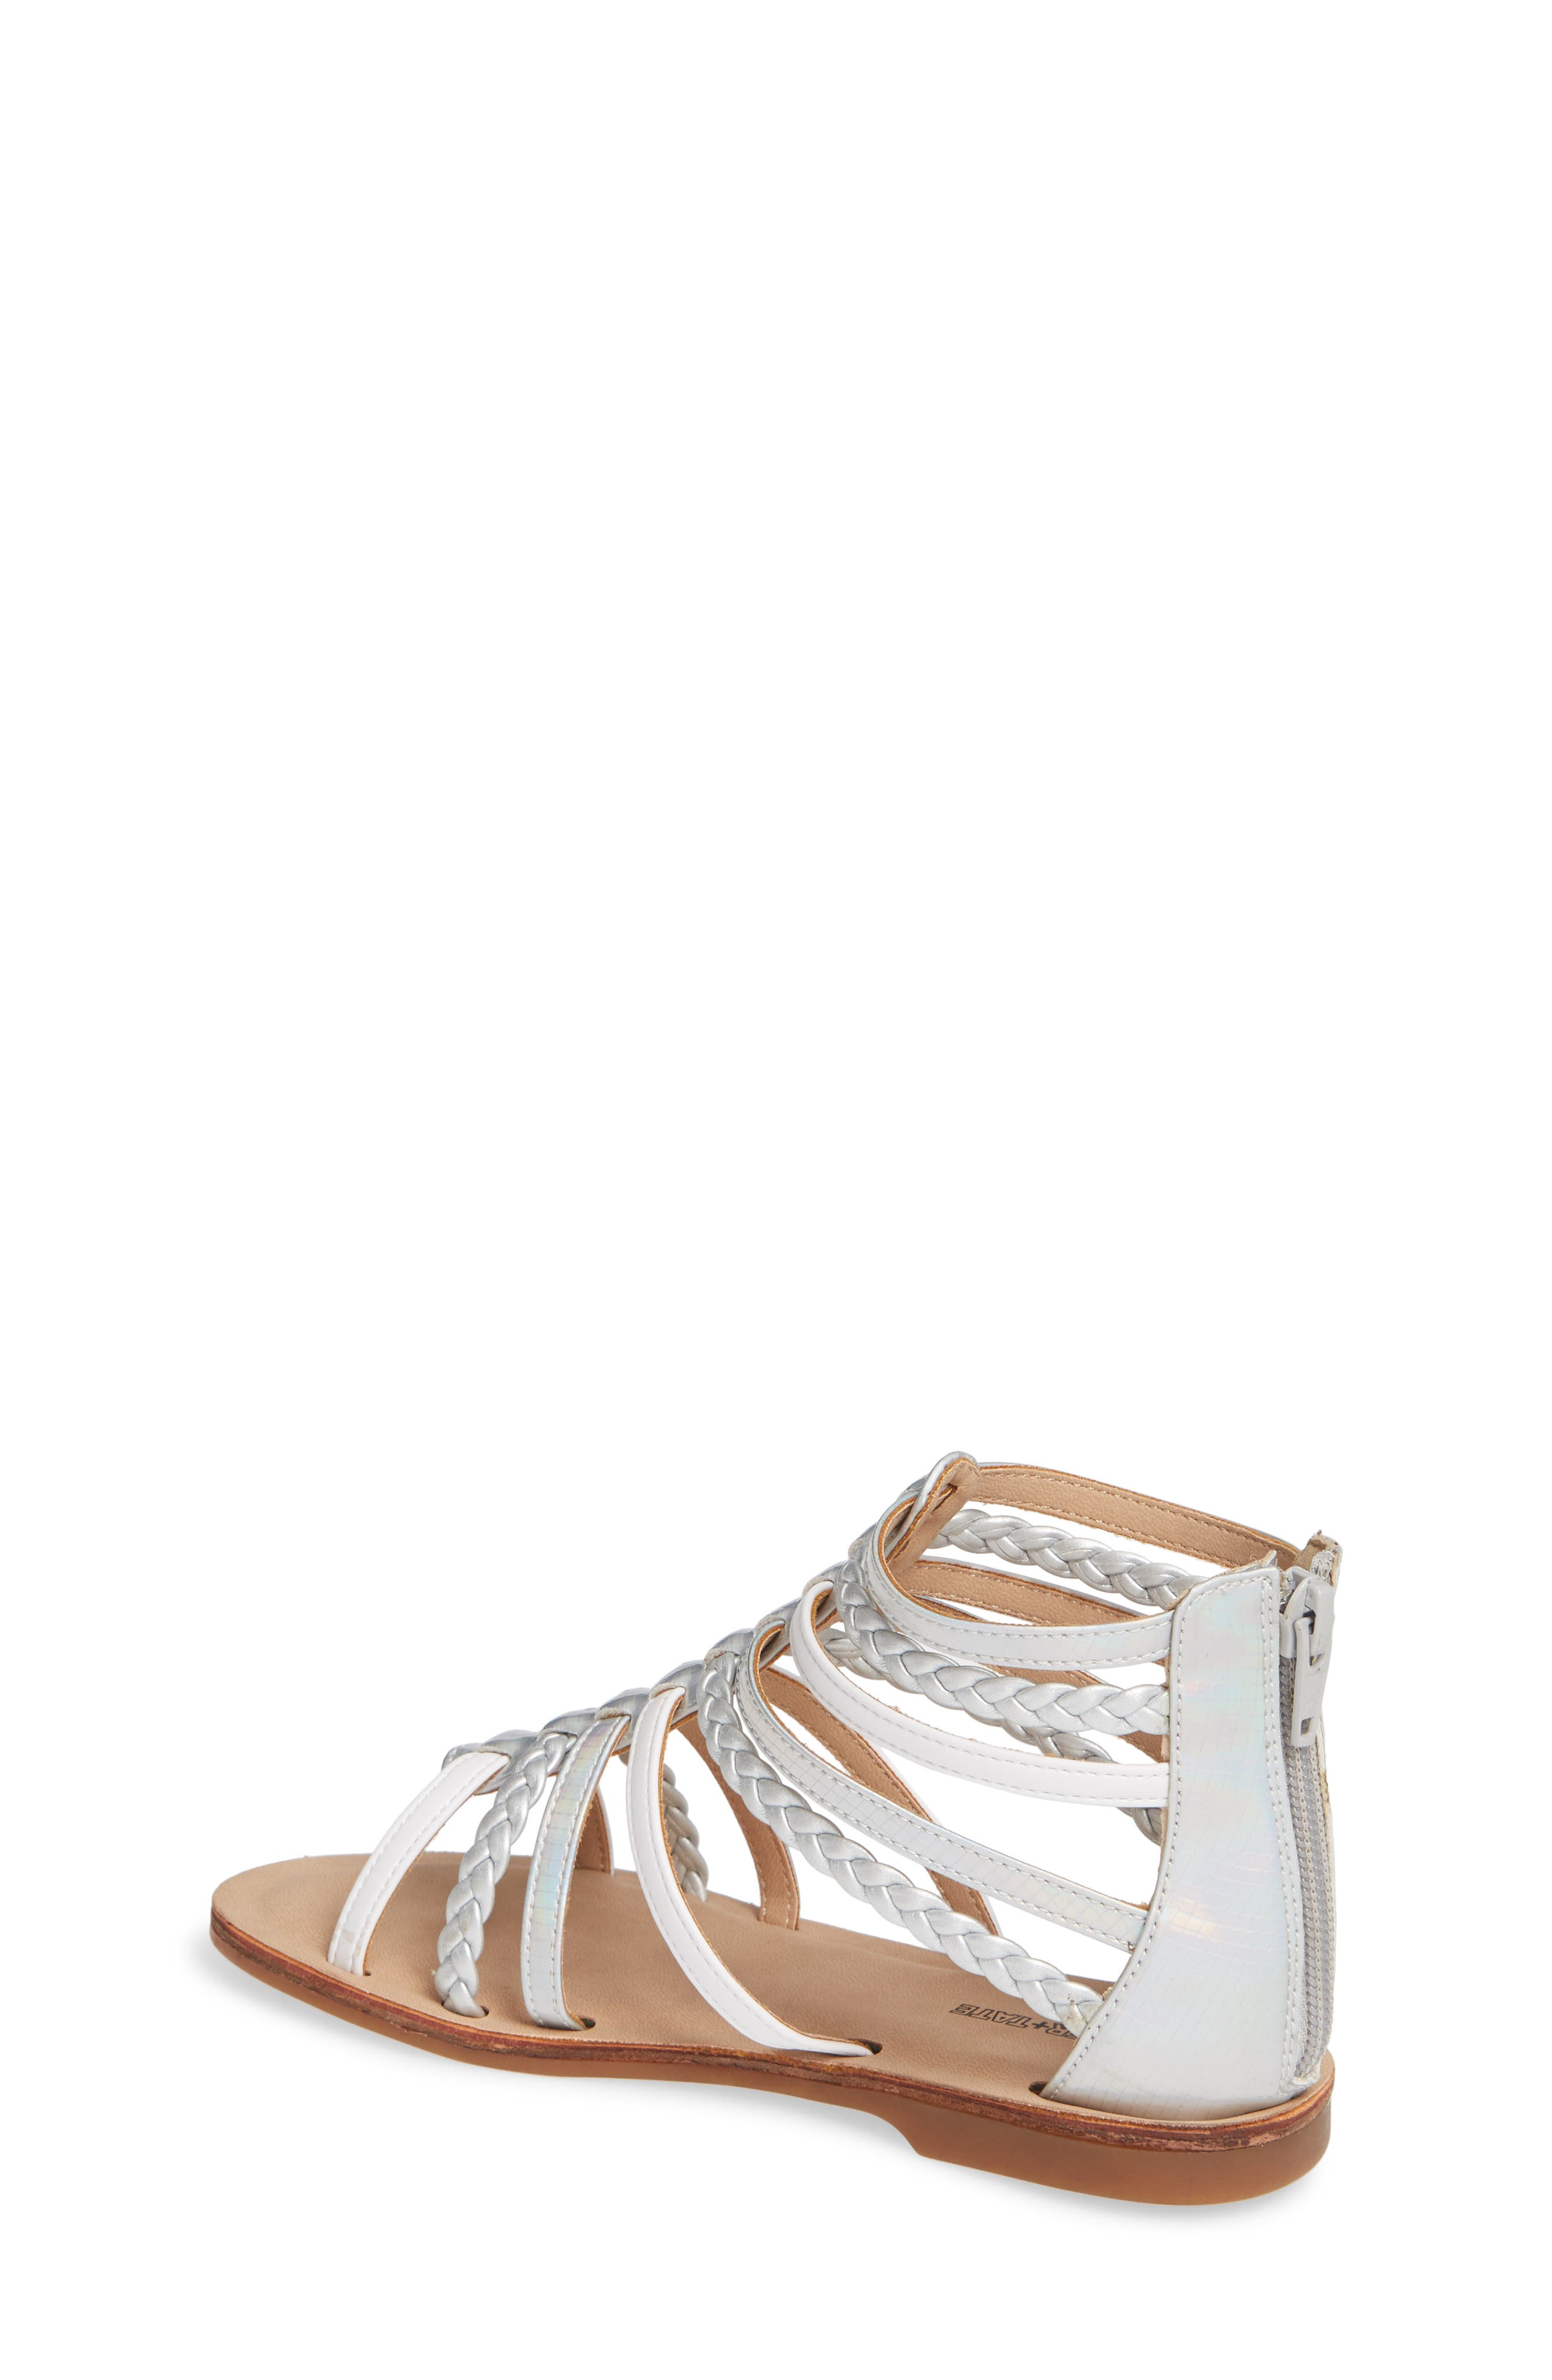 Sonja Braided Gladiator Sandal,                             Alternate thumbnail 2, color,                             WHITE/SILVER FAUX LEATHER